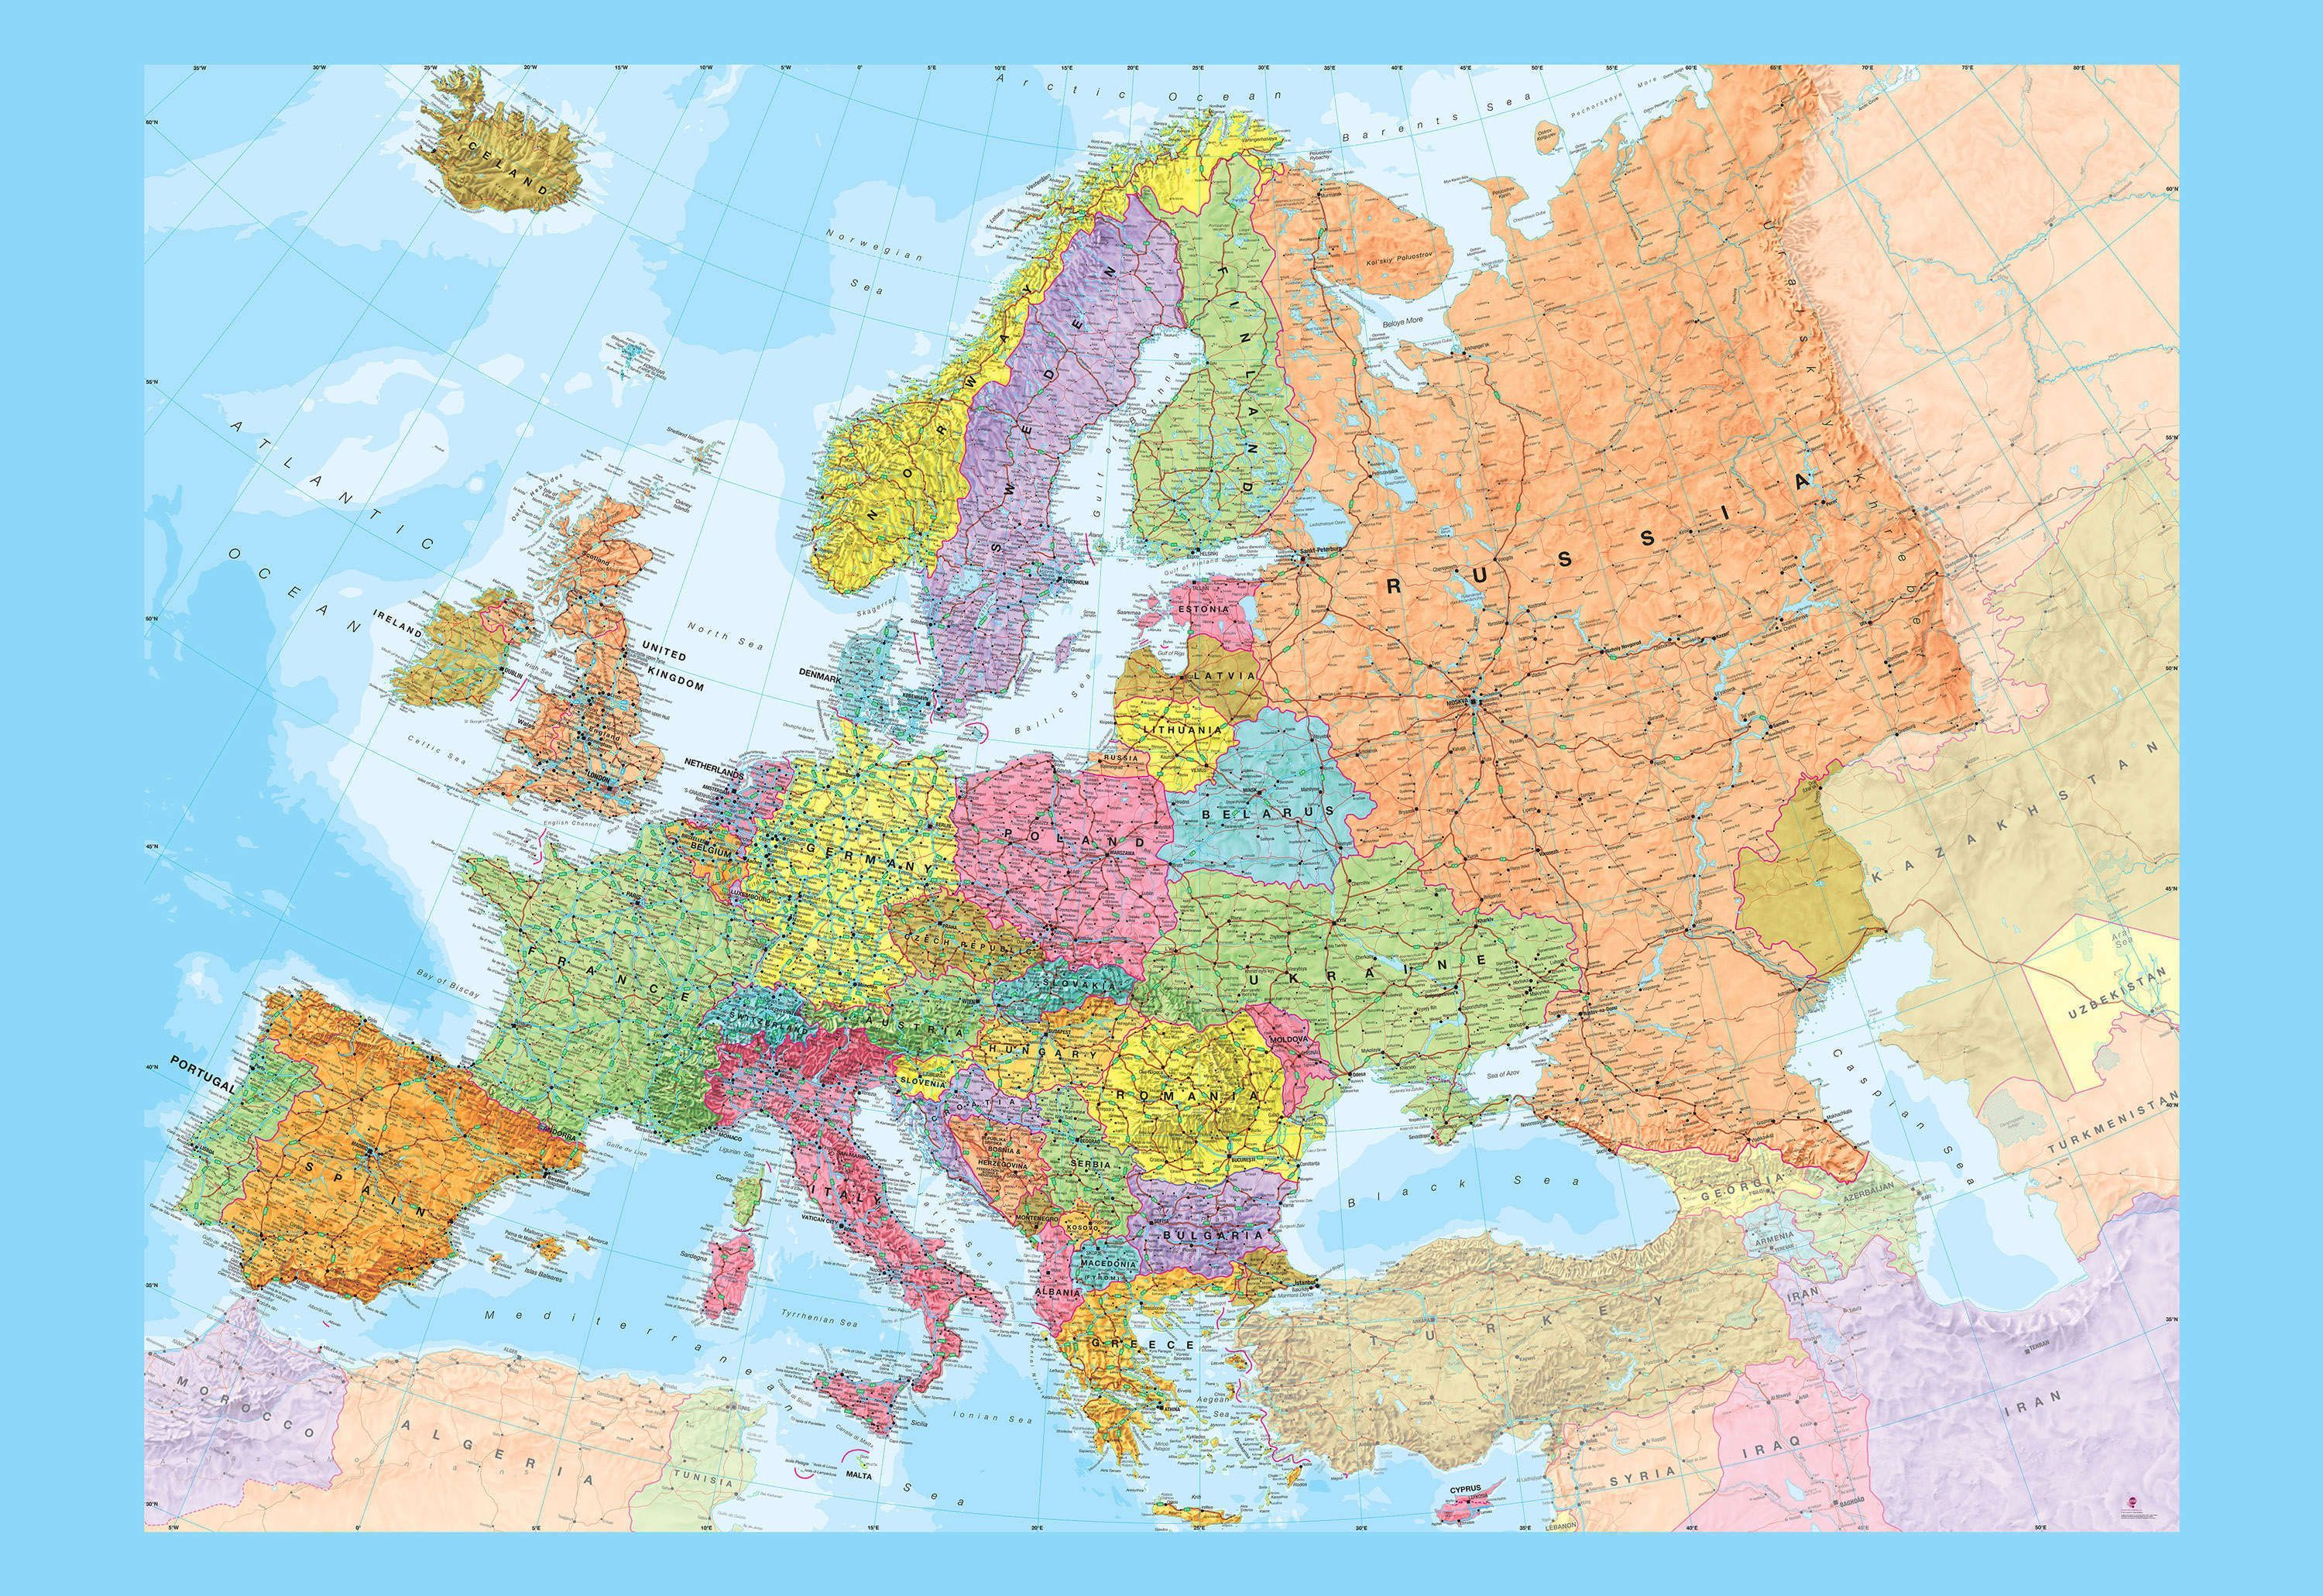 Europe Map Wallpapers Top Free Europe Map Backgrounds Wallpaperaccess